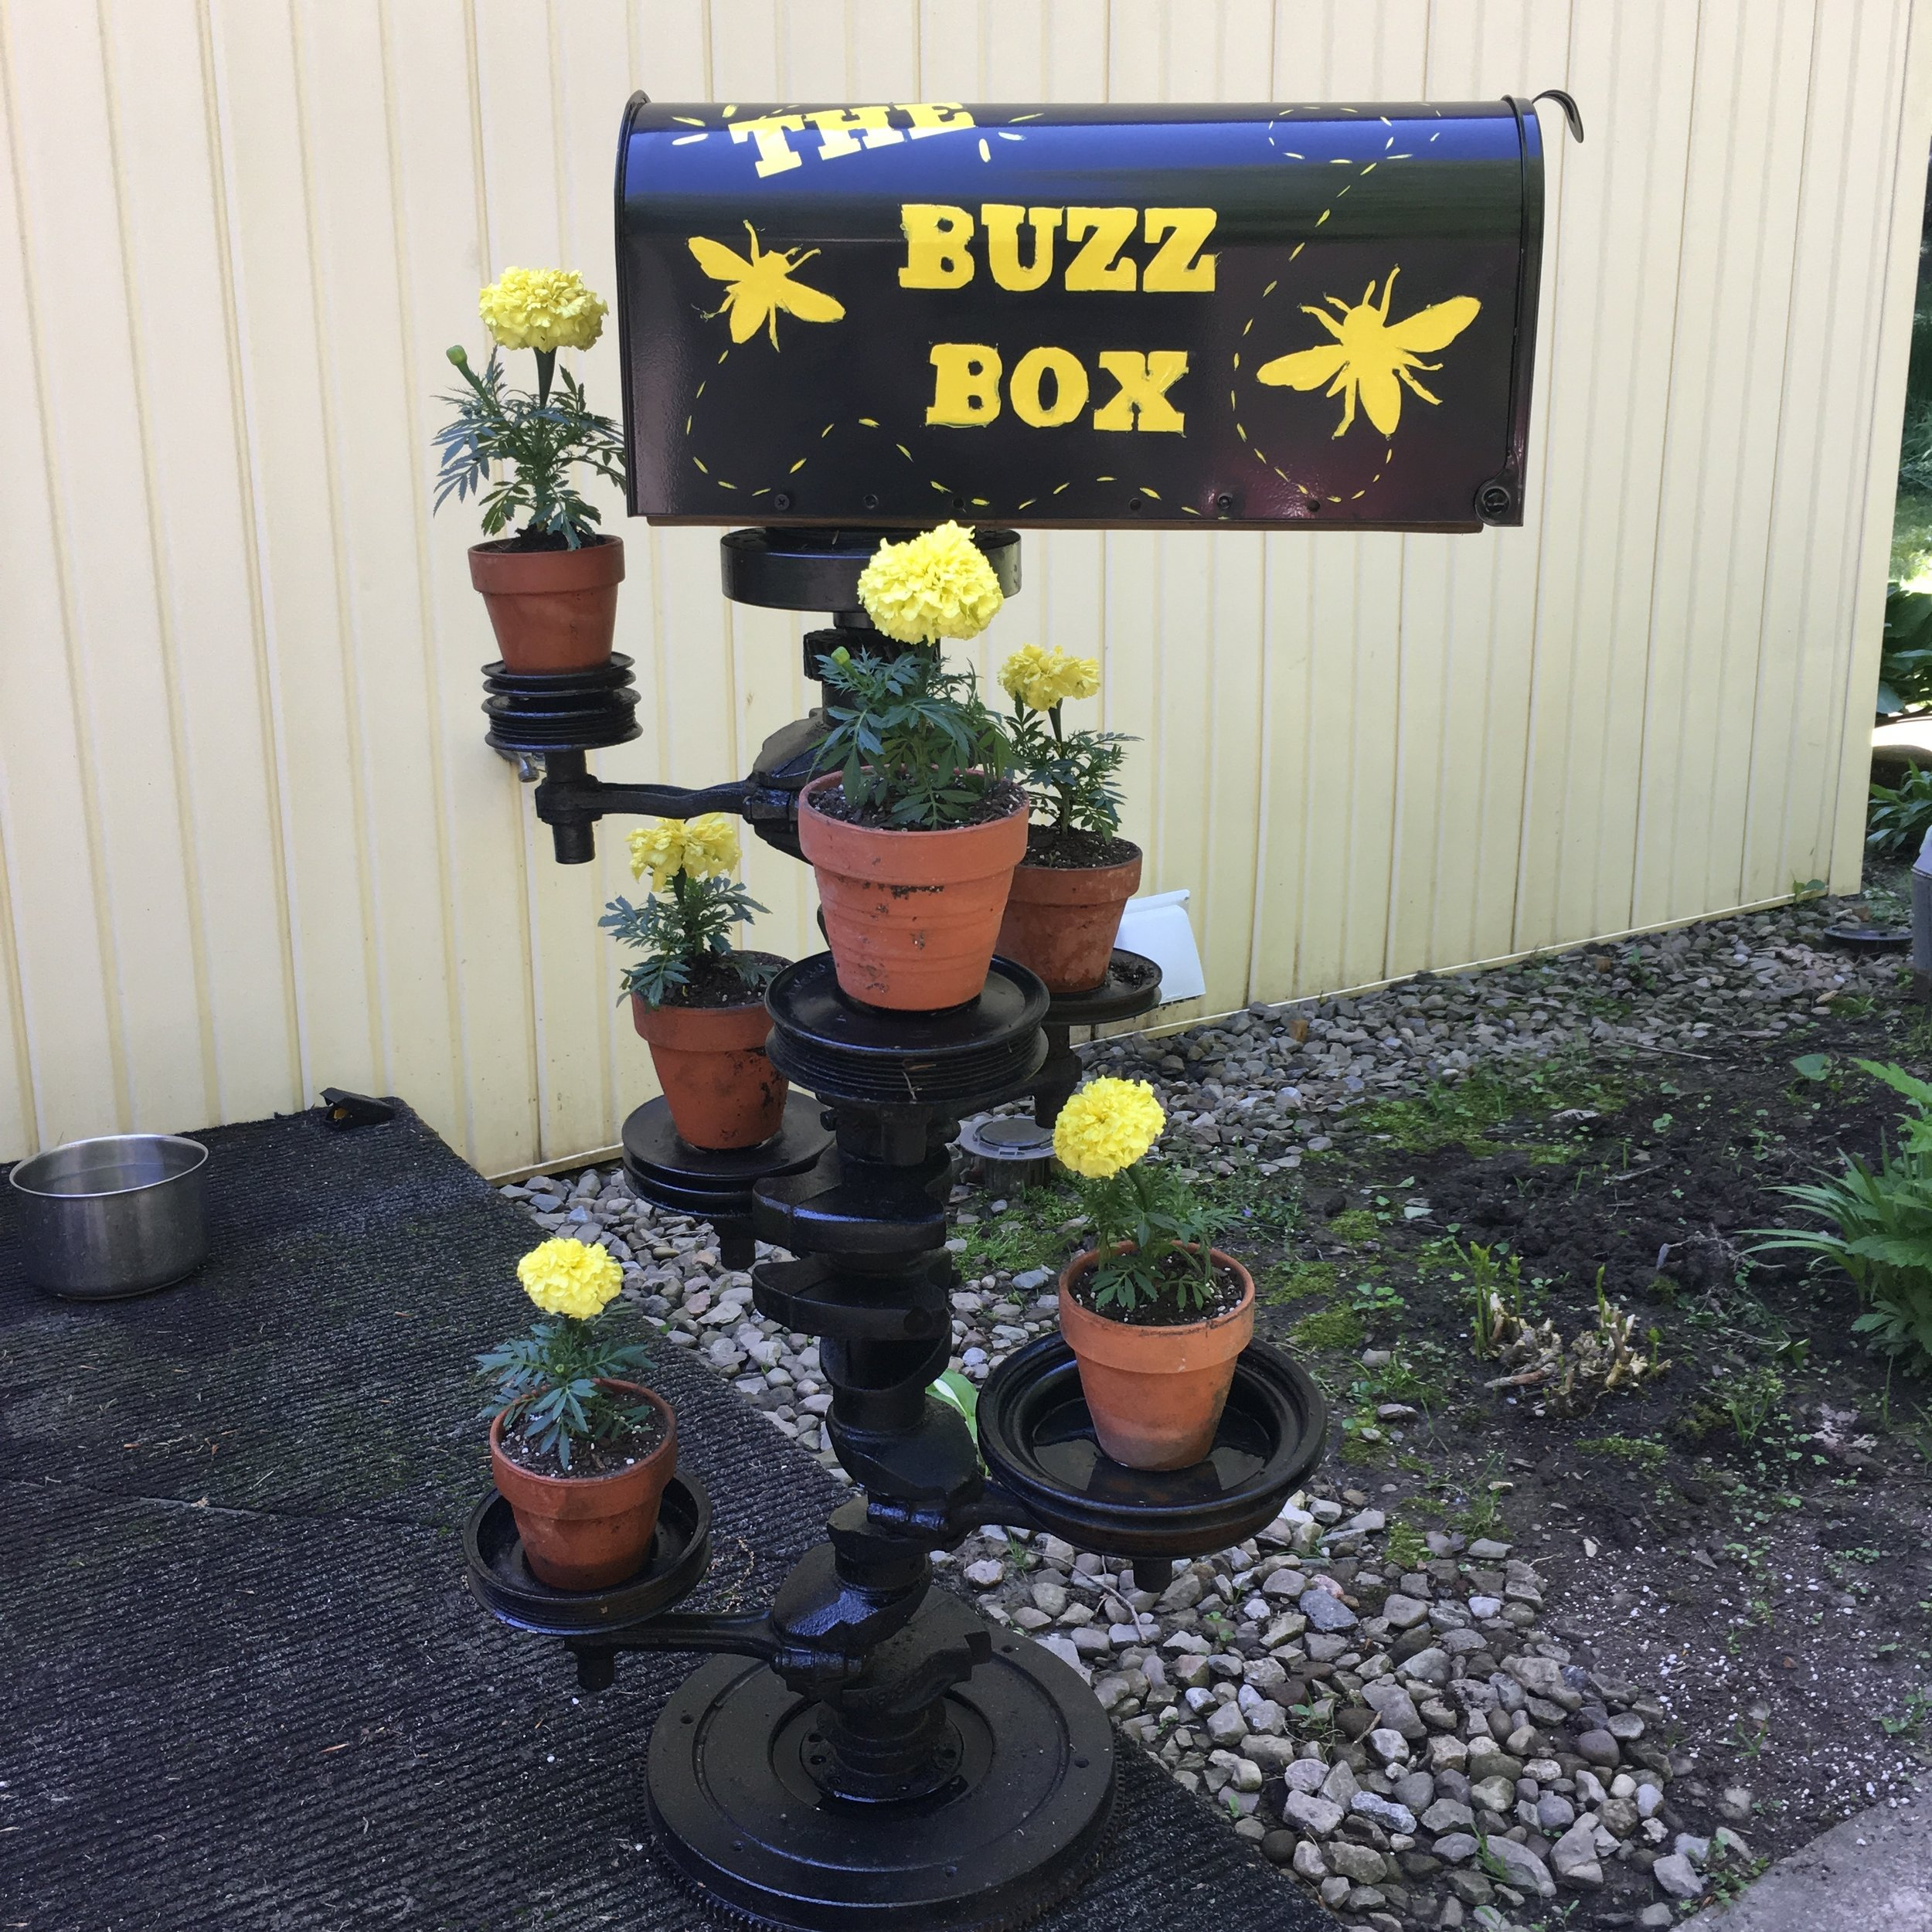 The Buzz Box at Schaefer's Auto Art